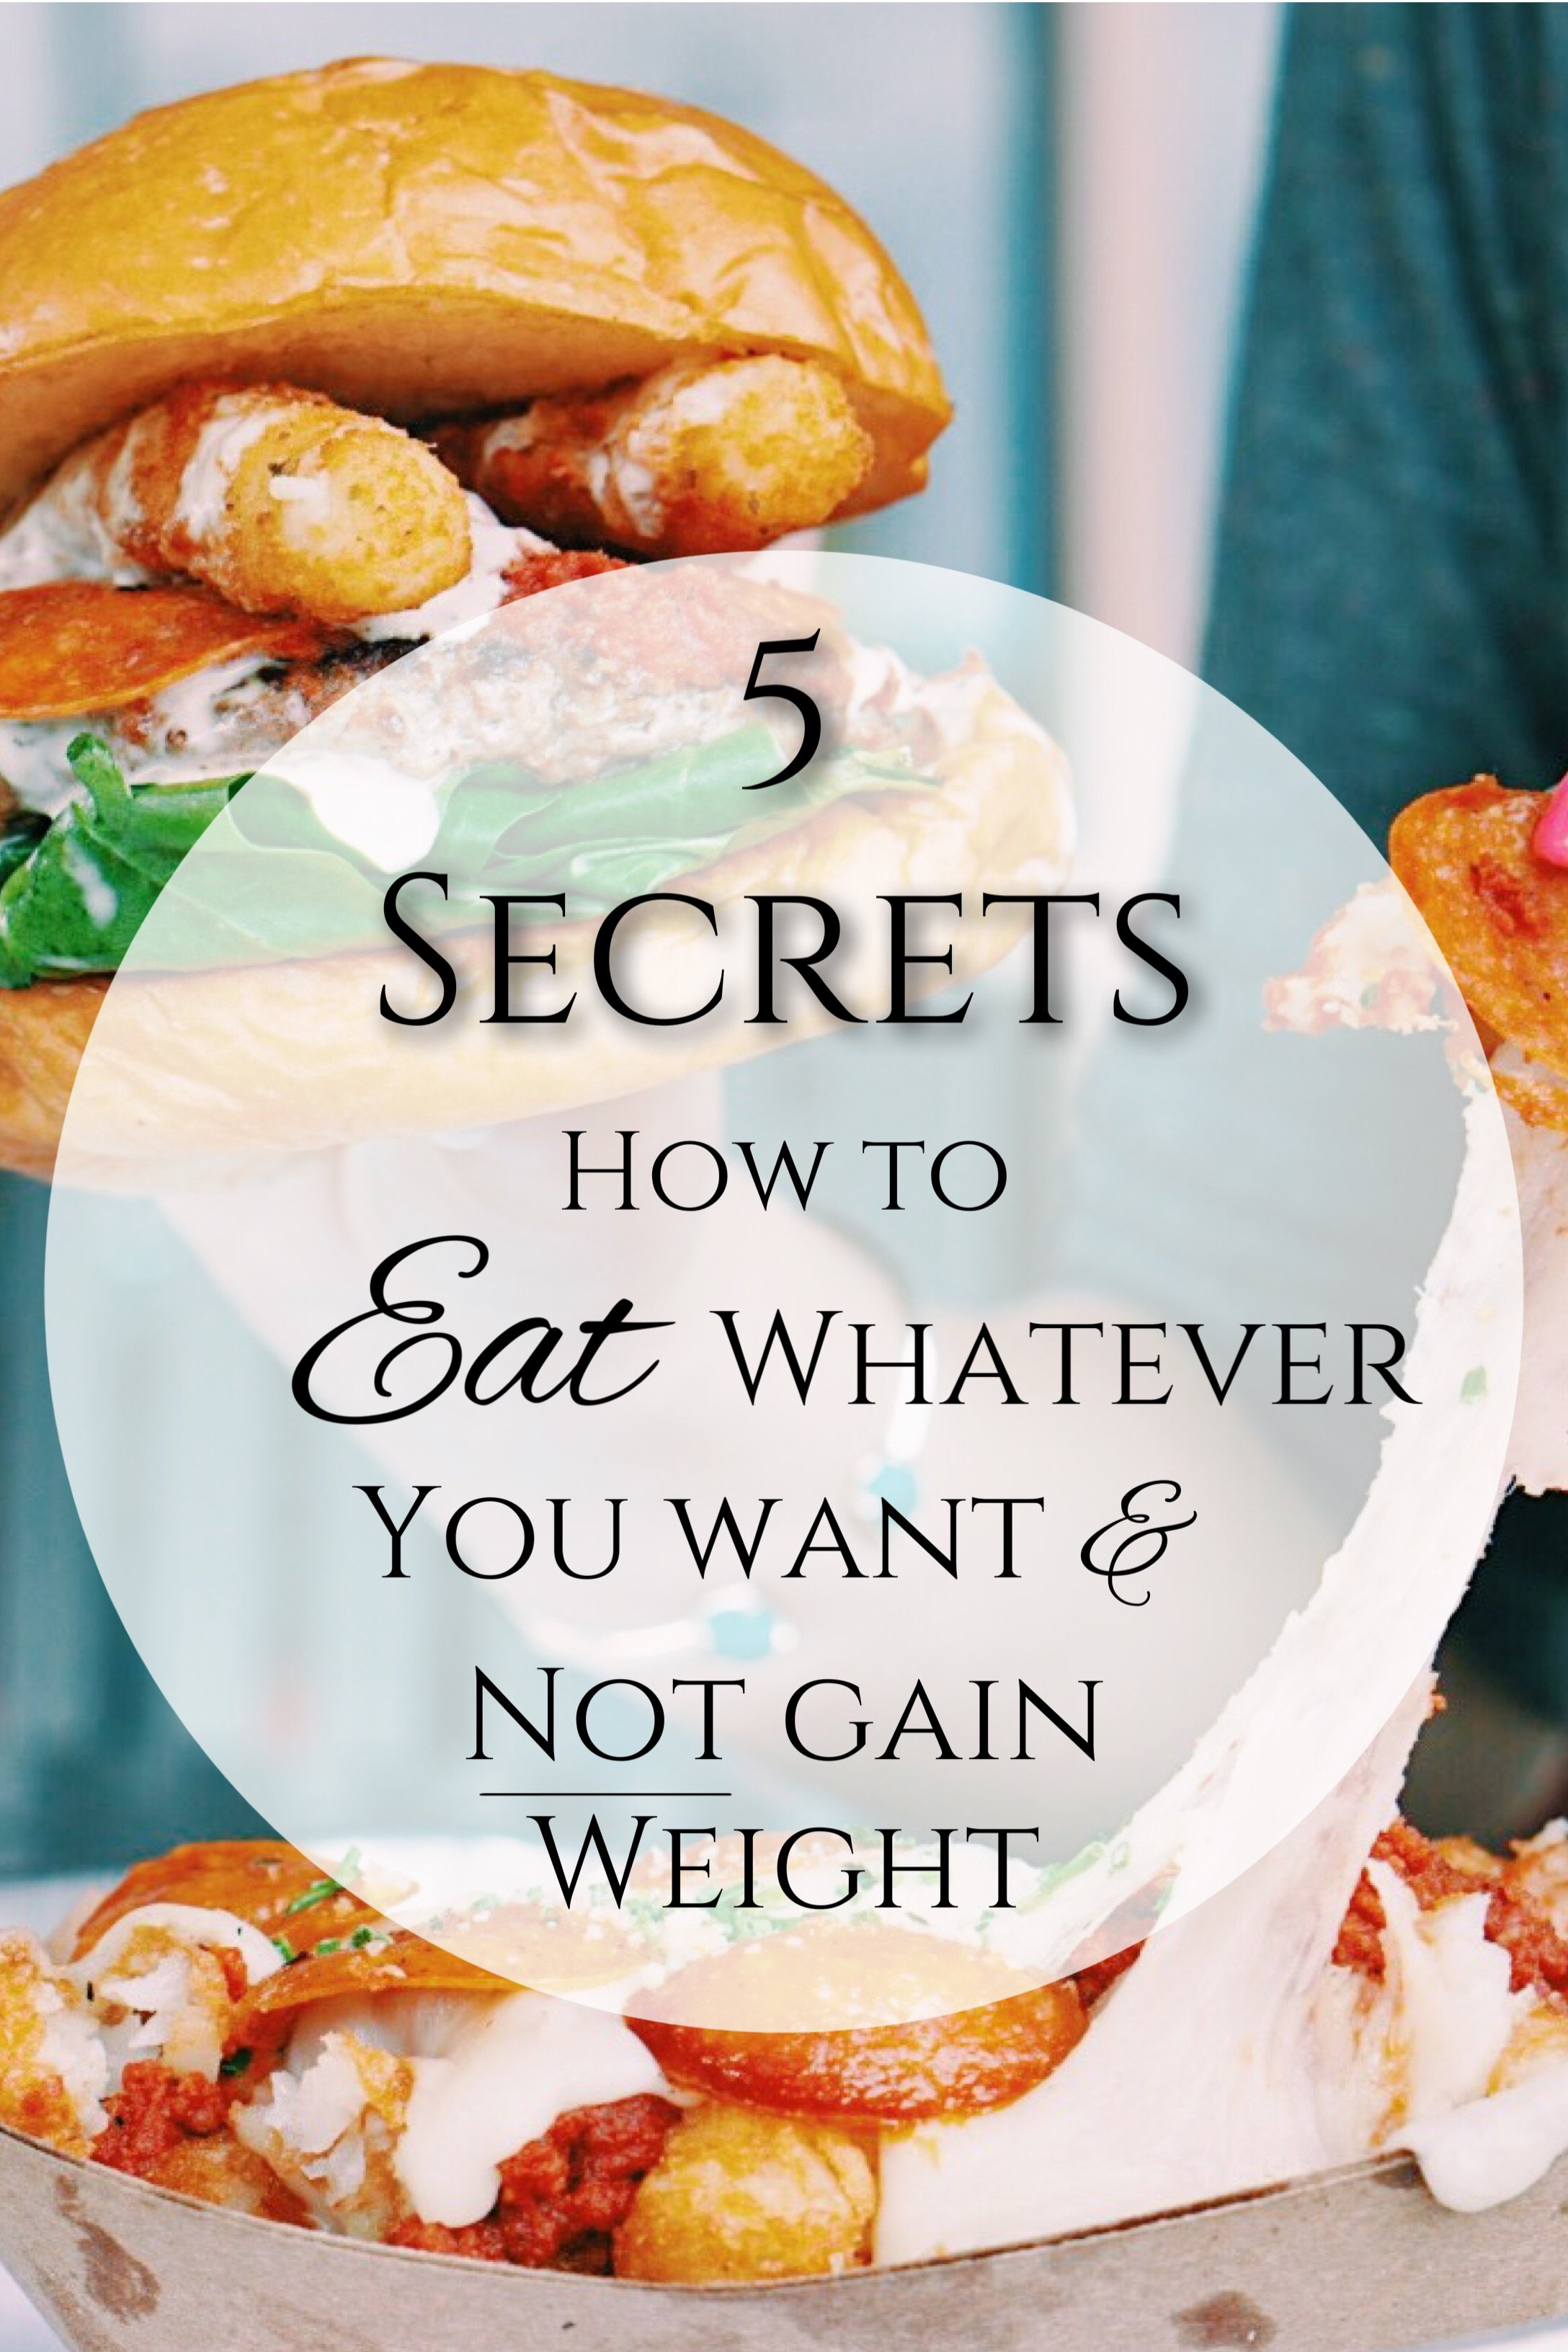 My Top 5 Secrets on How to Eat Whatever You Want and Not Gain Weight